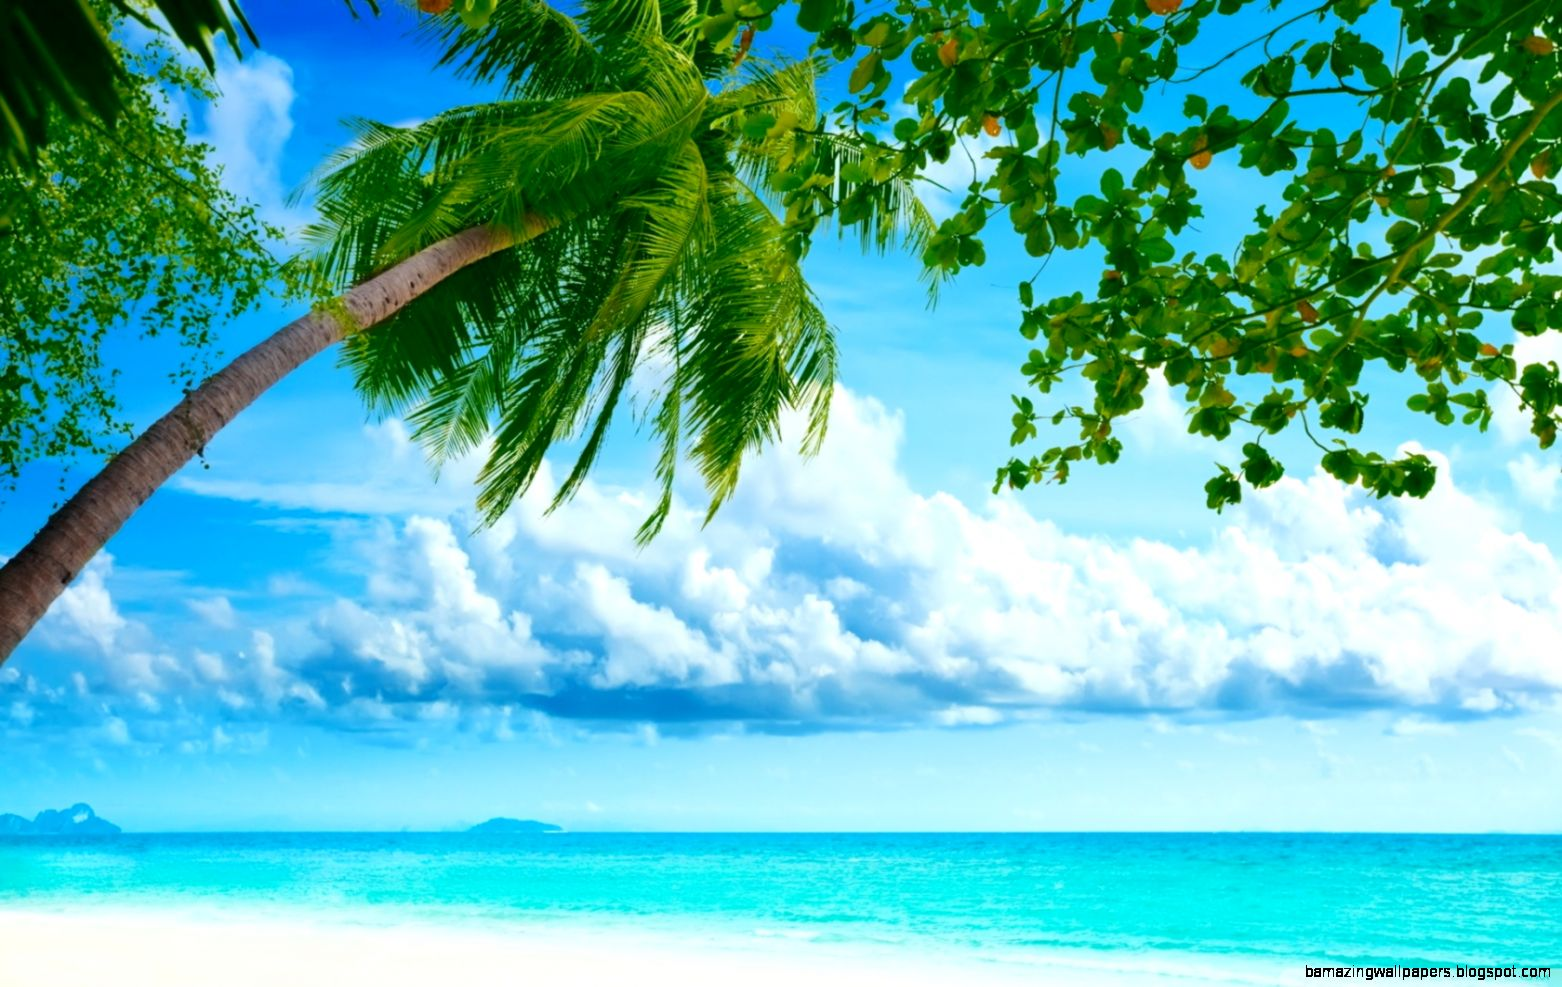 Hd Tropical Island Beach Paradise Wallpapers And Backgrounds: Tropical Wallpaper Widescreen